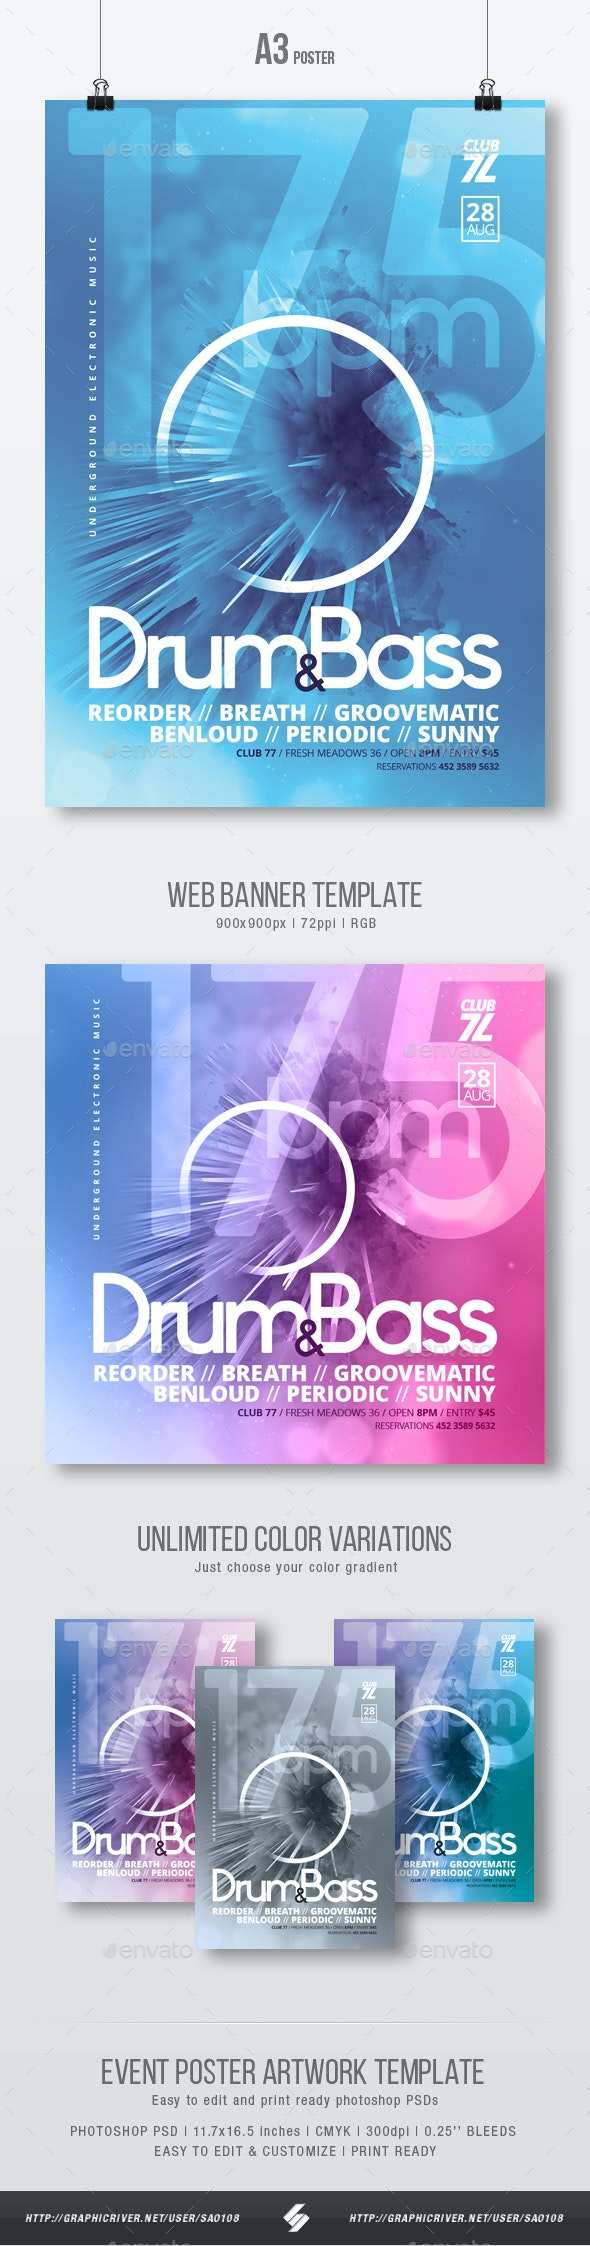 175 bpm - Drum and Bass Party Flyer / Poster Template A3 - Clubs & Parties Events